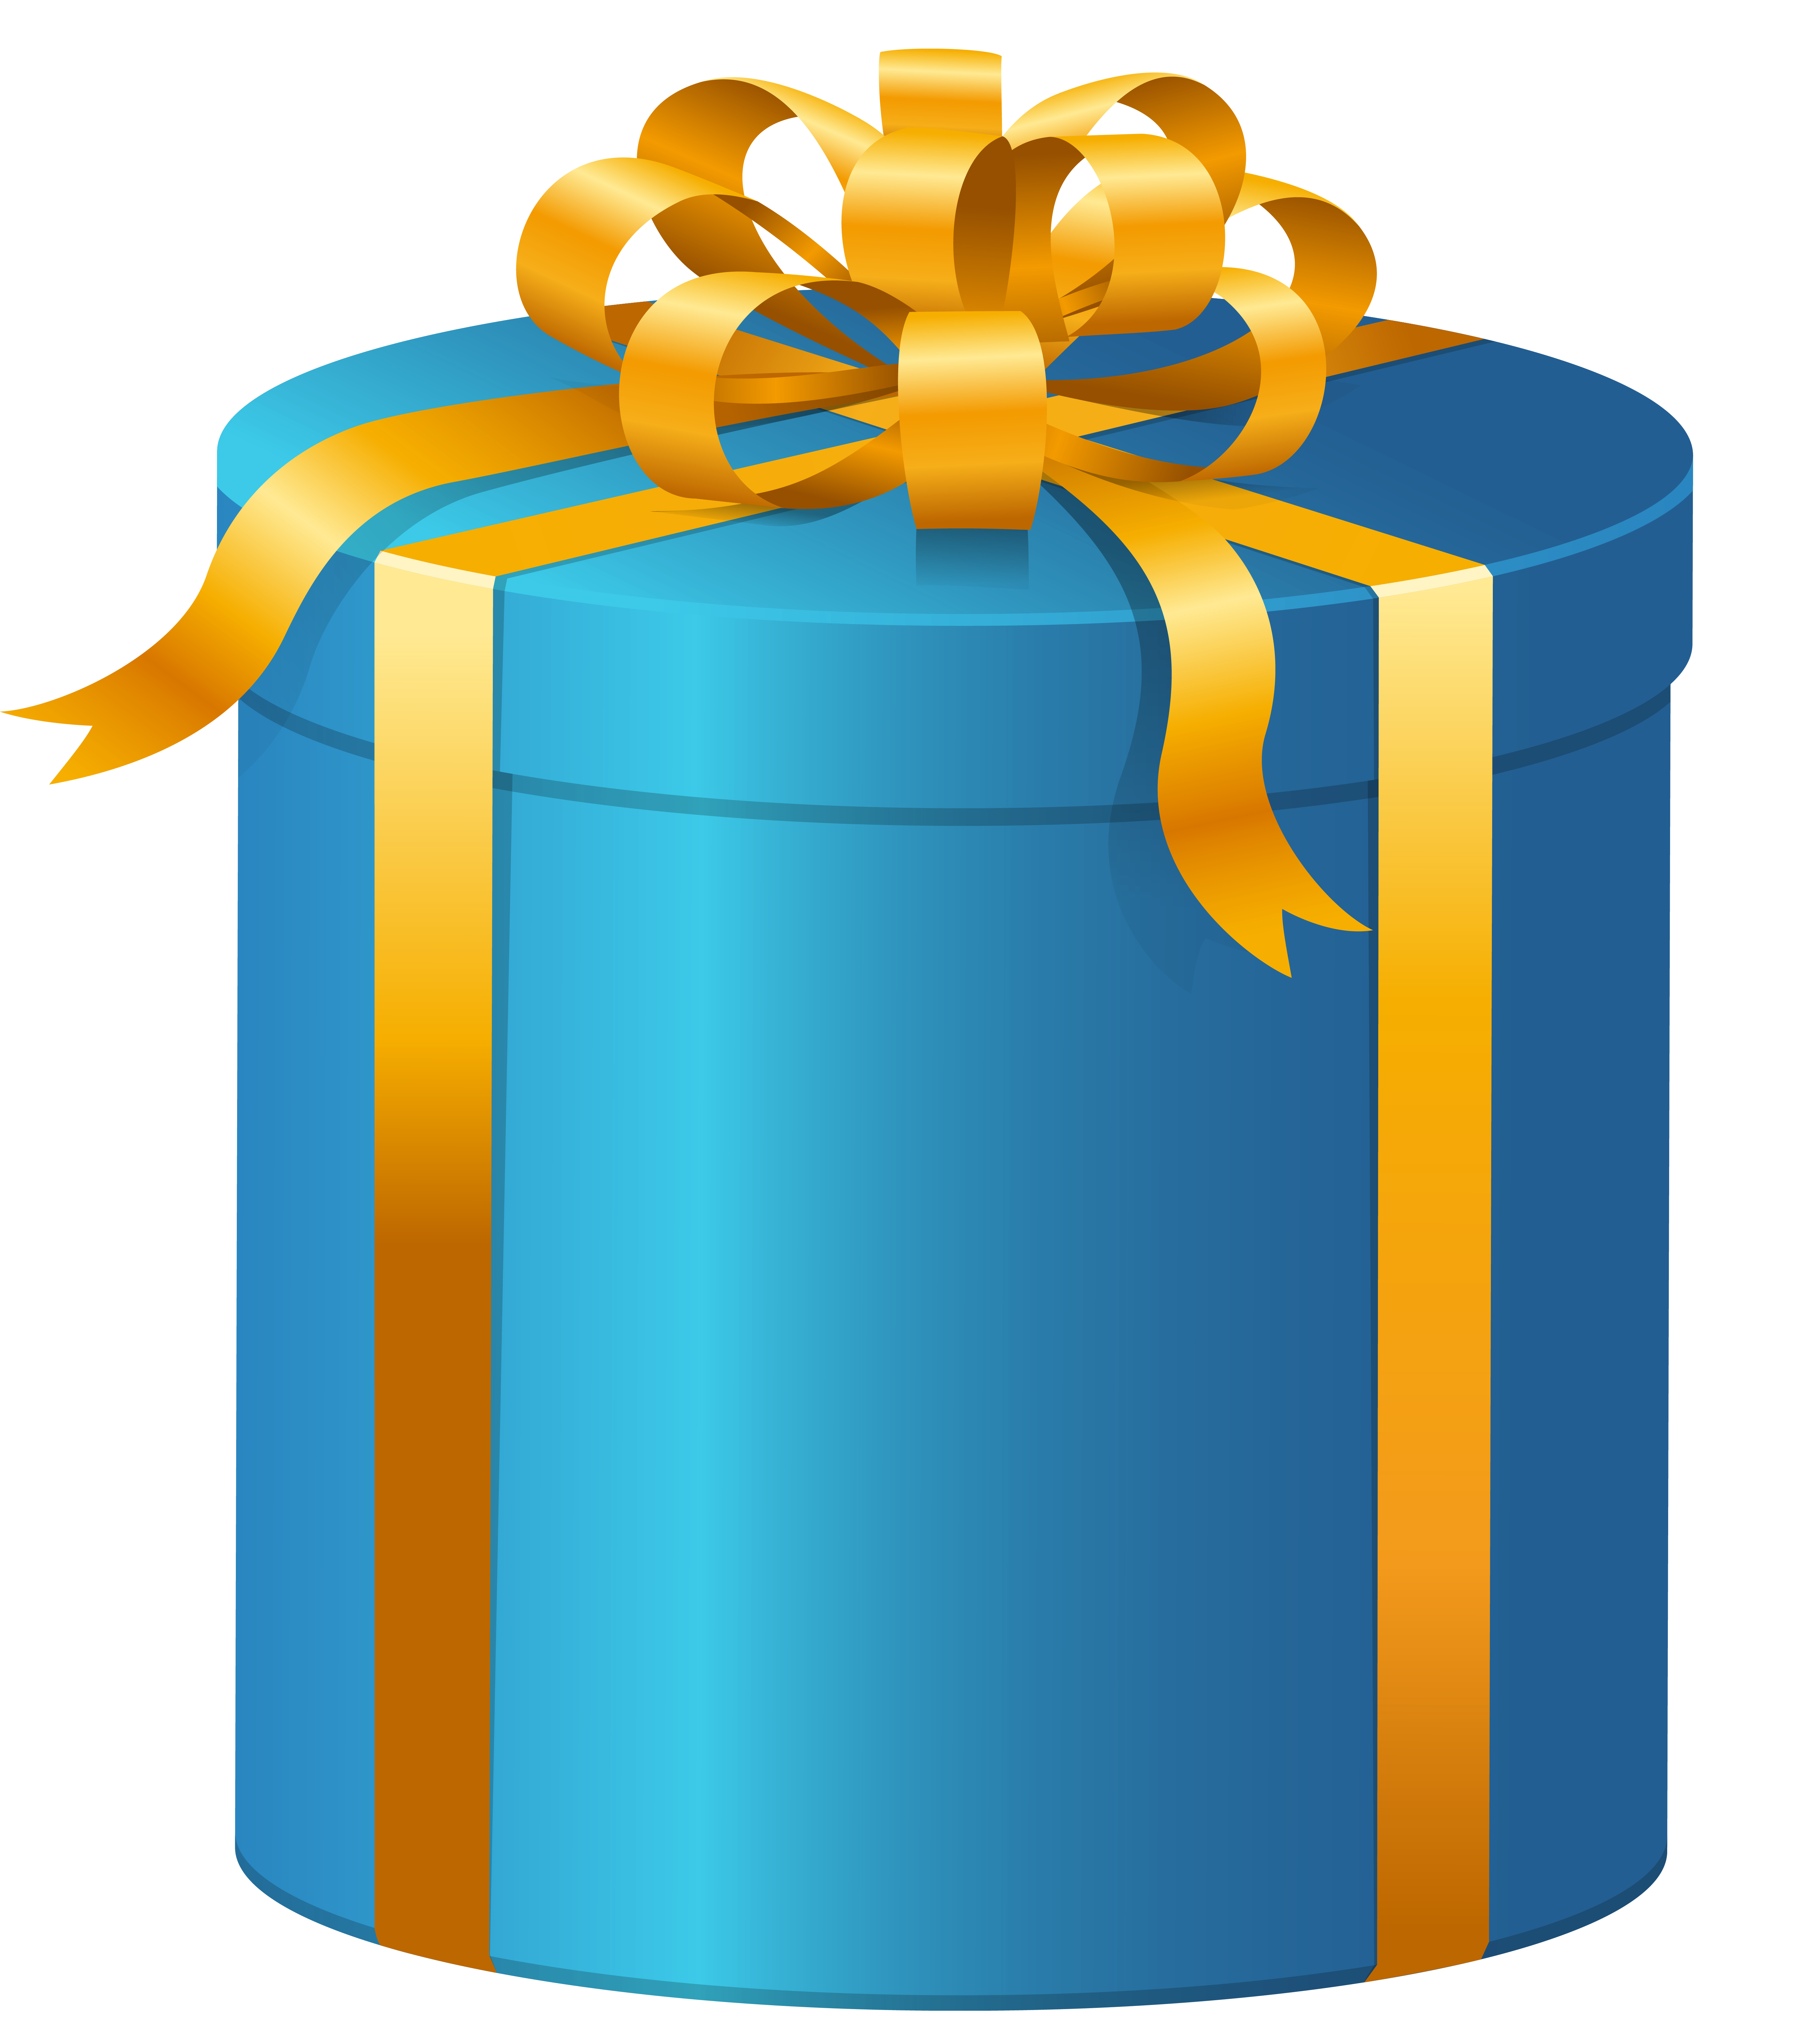 Christmas Present Boxes Clipart Free Download Best Christmas